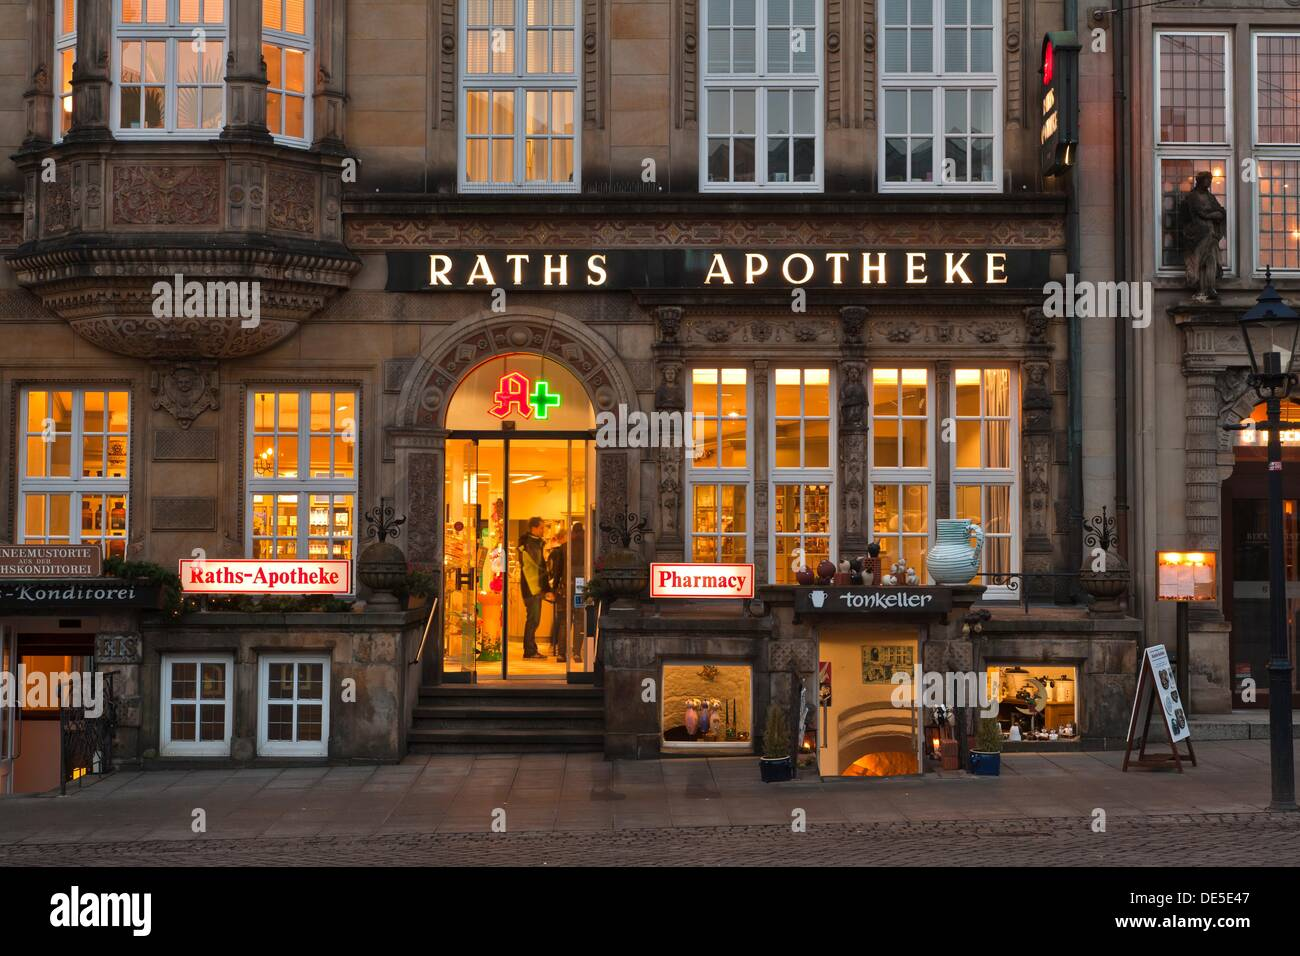 Pharmacy inside a historic building in bremen germany europe stock photo royalty free image - Inside mobel bremen ...